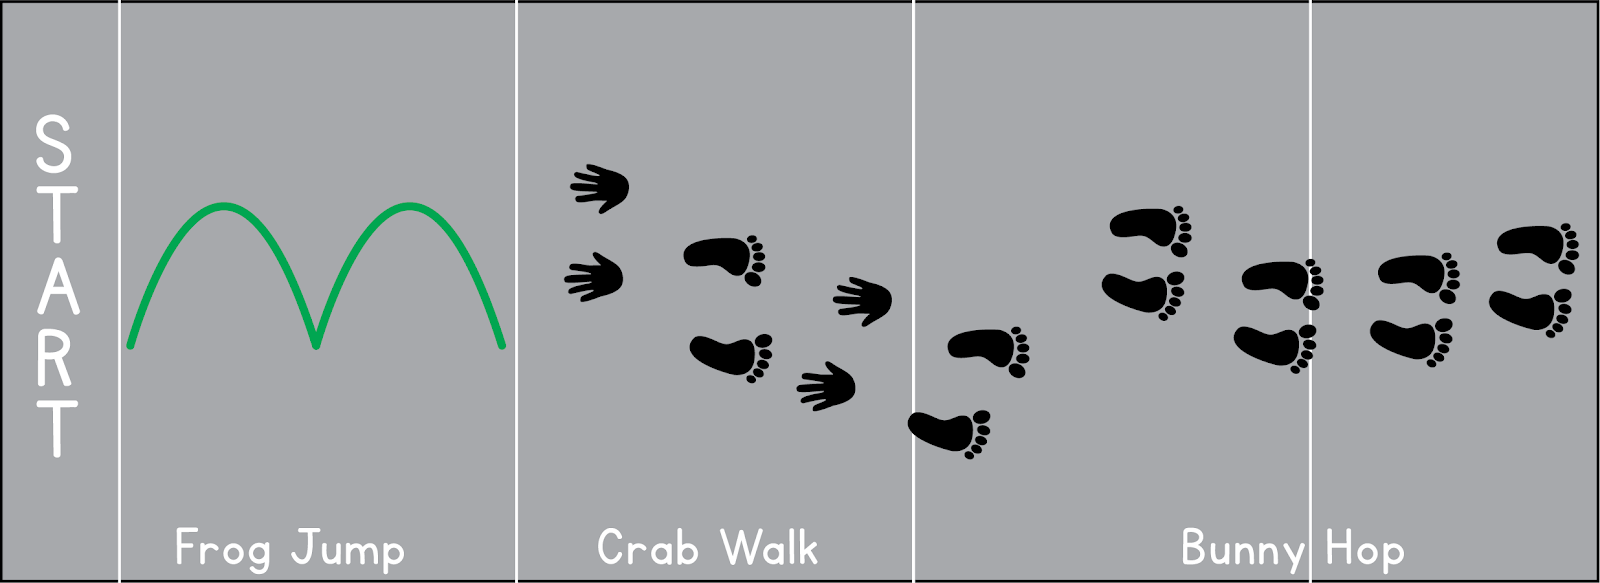 At one end, the sidewalk has a 'start' label. The first section is for the frog jump. The next section is for crab walk. The next 2 sections are for bunny hops.